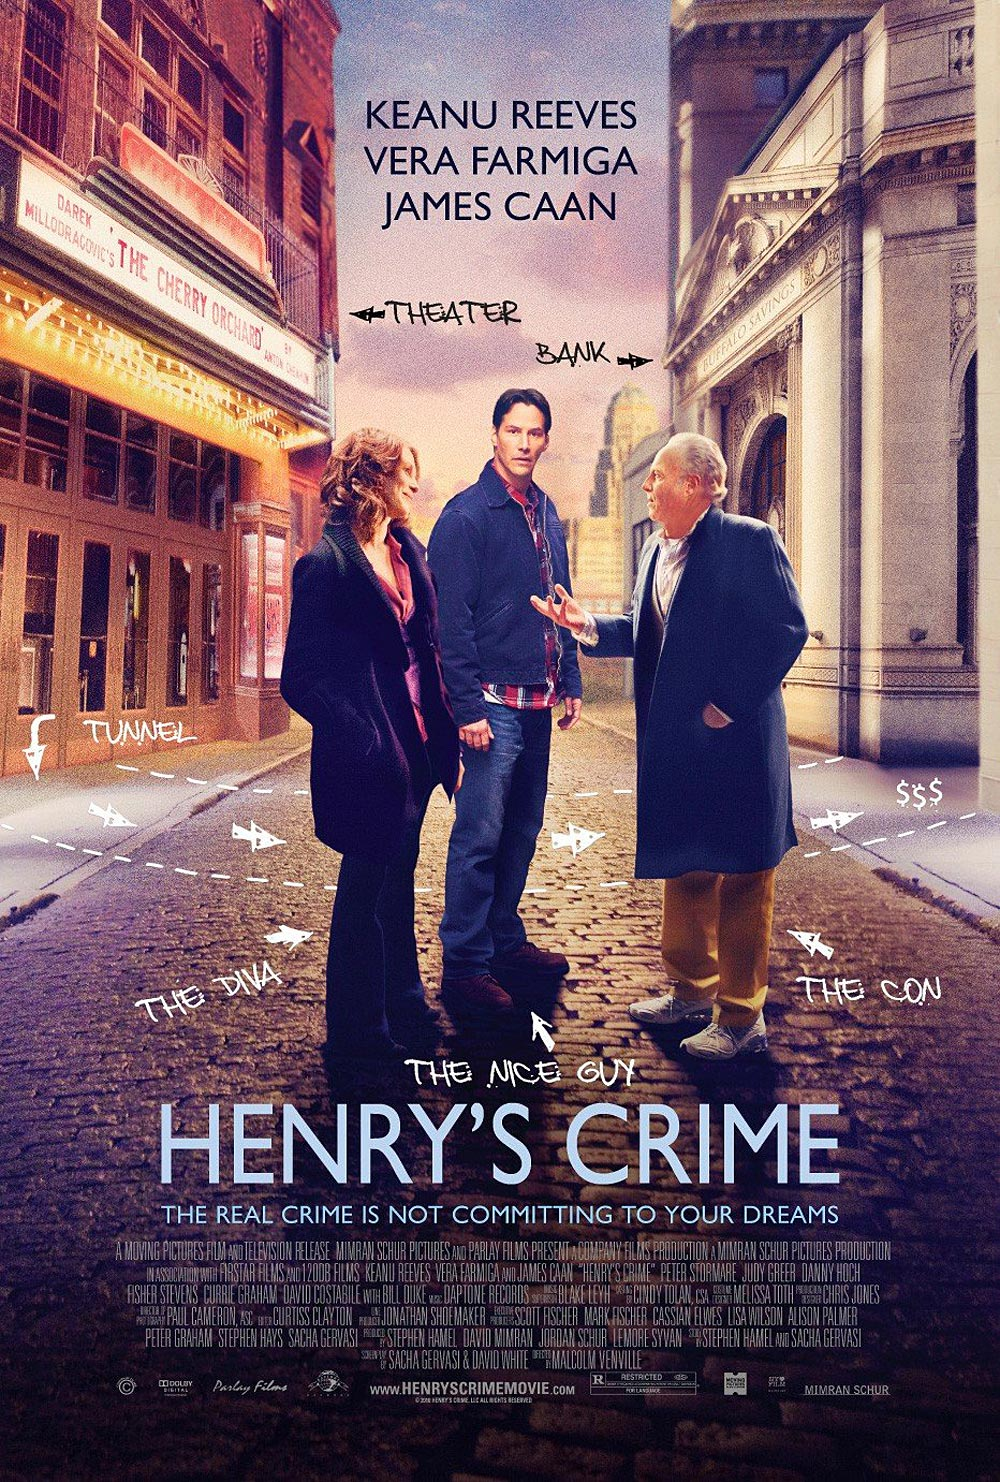 Movie Review: 'Henry's Crime' falls short